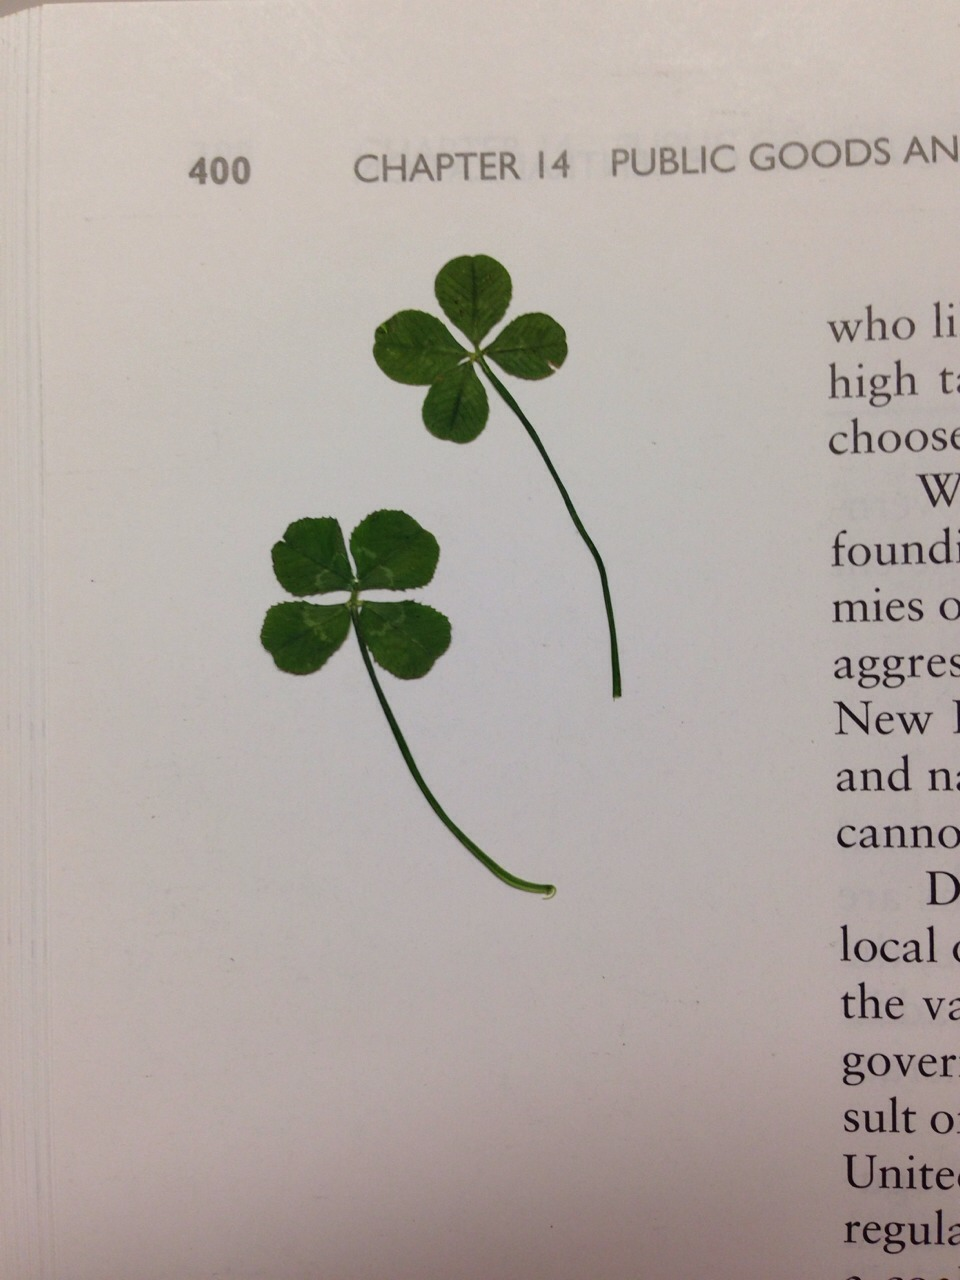 When you find one, press it in a textbook on a page you'll remember, so it dries flat. Even better, give it to a friend or a stranger to share your luck and brighten someone's day.